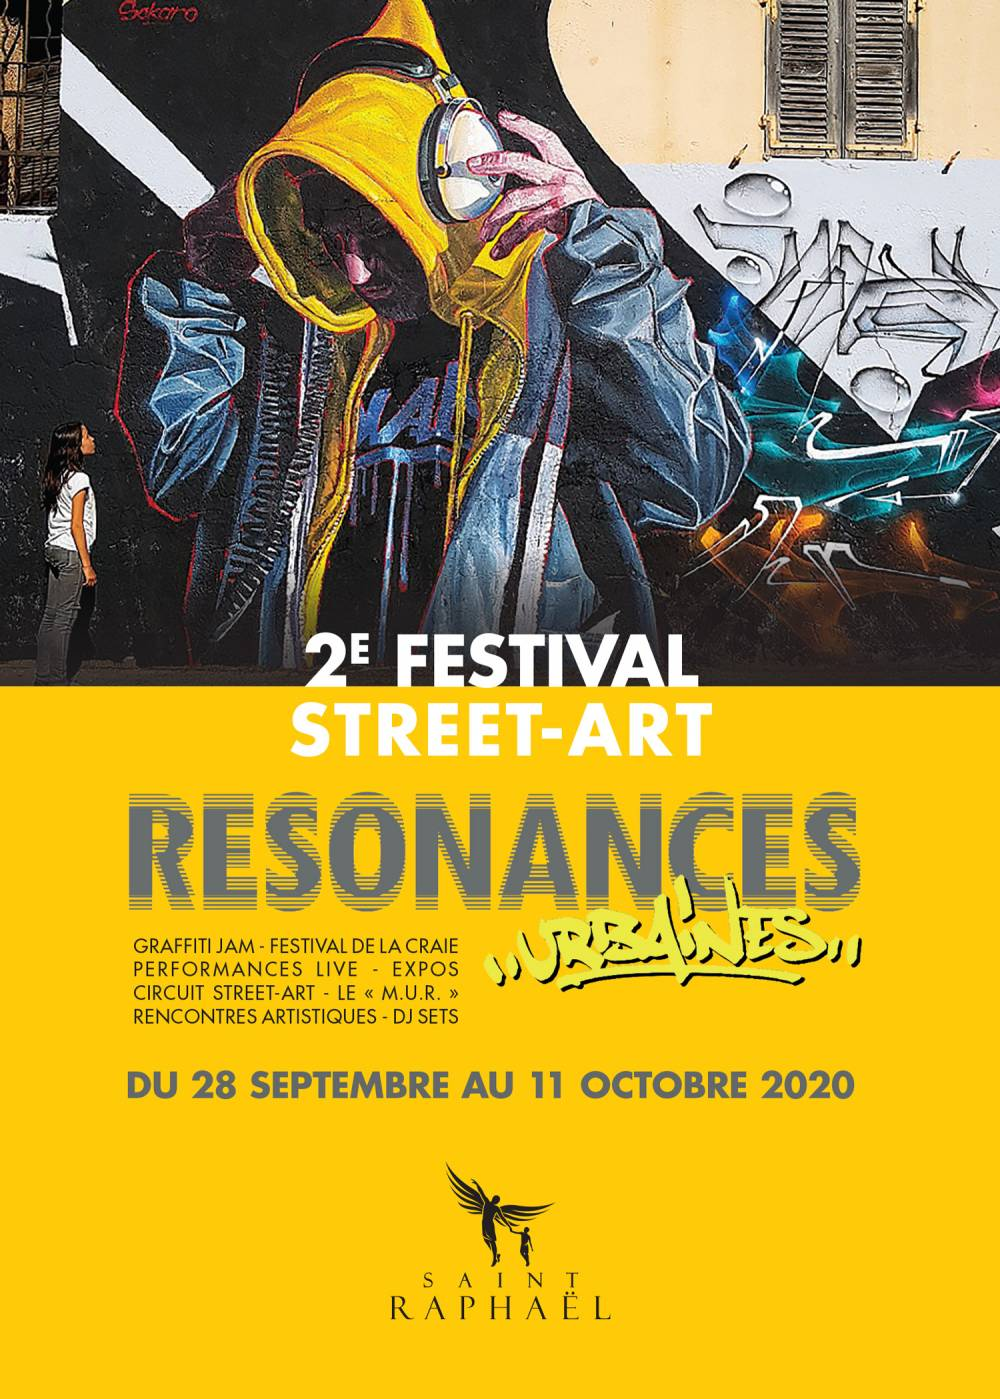 Deuz Du 28 SEPTEMBRE au 11 OCTOBRE 2020 // RÉSONANCES URBAINES // SAINT-RAPHAÊL